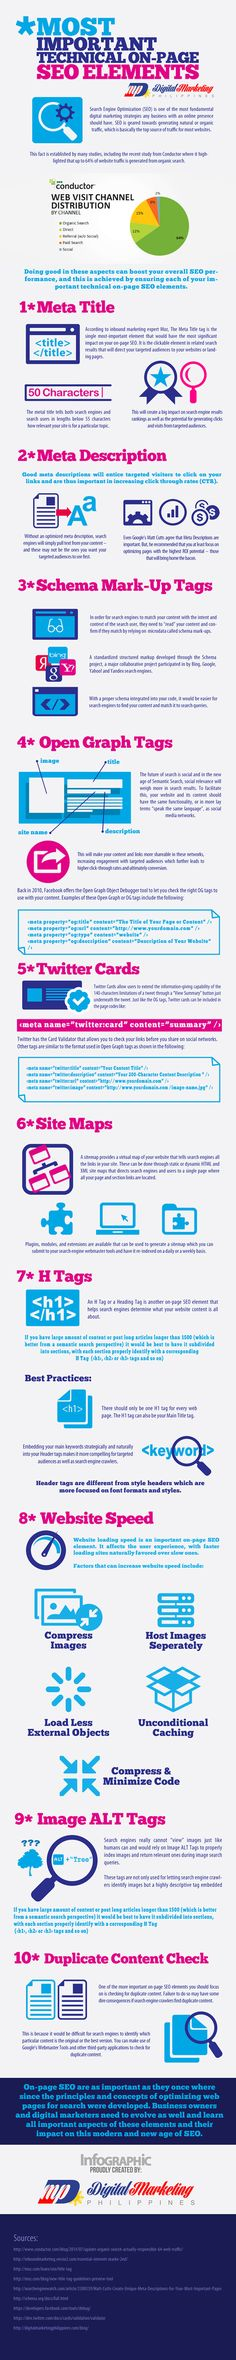 Most Important Technical On-Page SEO Elements #Infographic | MarketingHits | Scoop.it